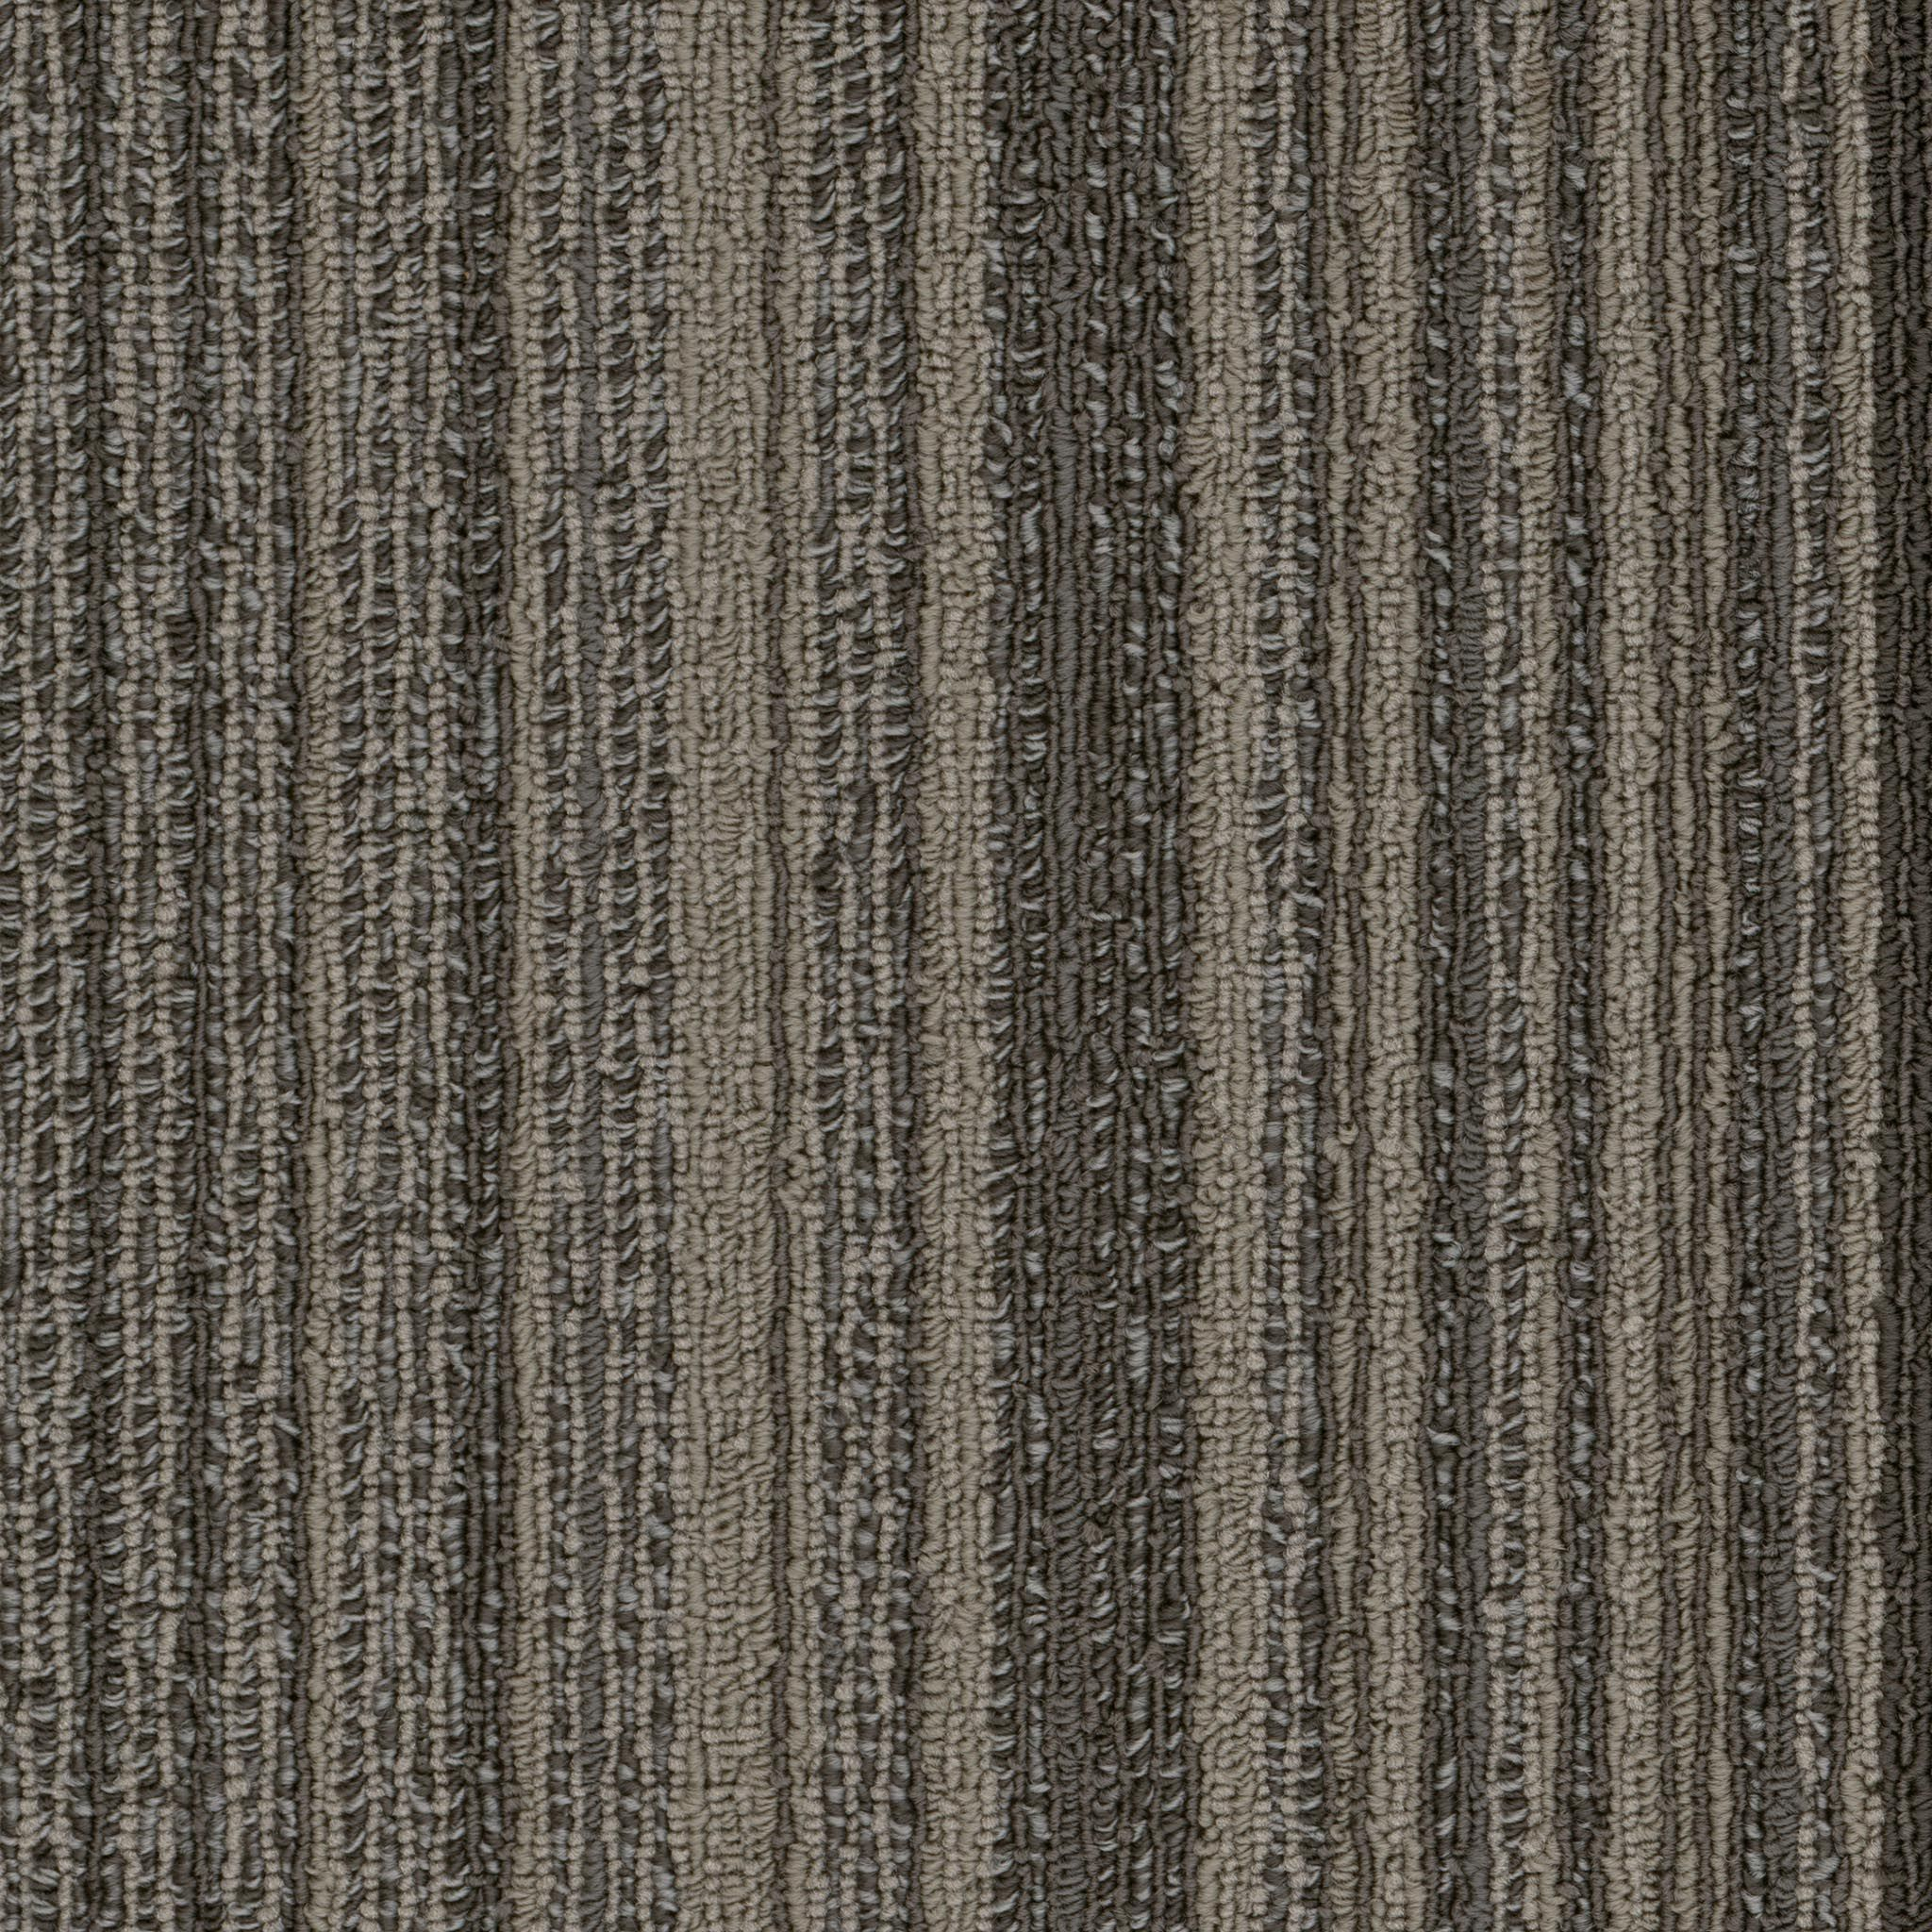 Stretch Carpet Tile By Ef Contract Flooring In 2020 Carpet Tiles Commercial Carpet Commercial Carpet Tiles